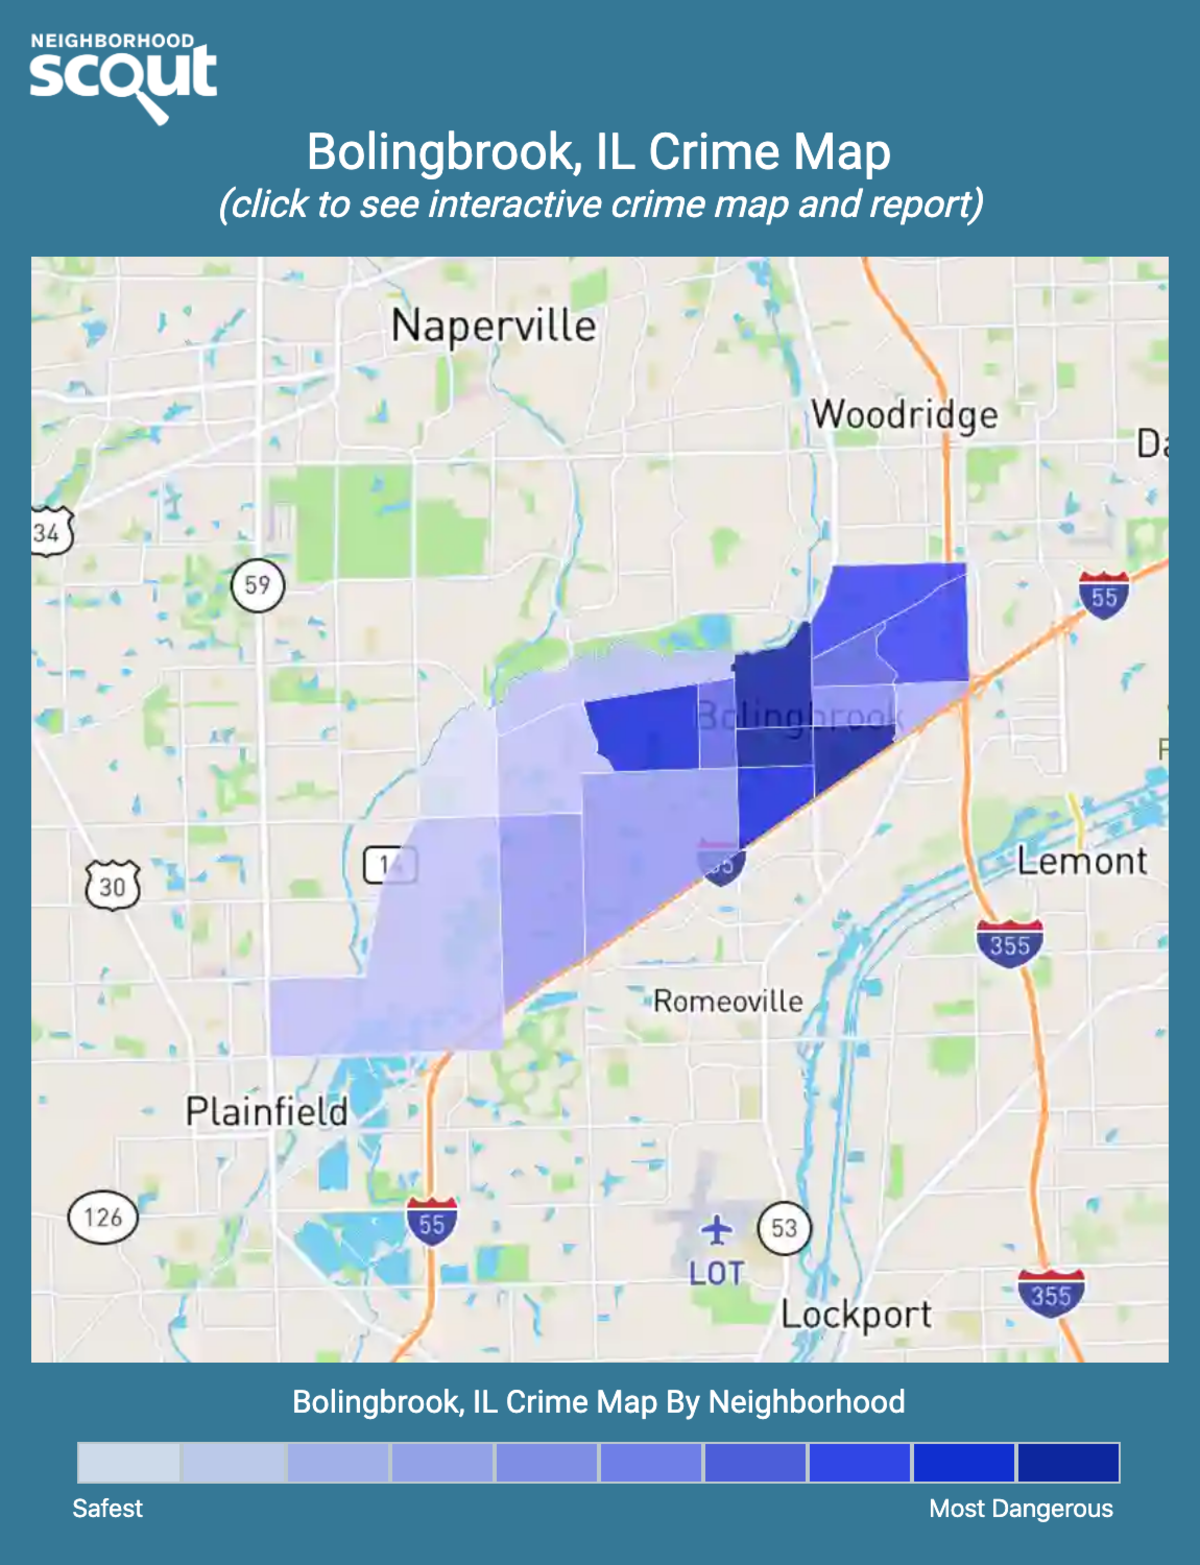 Bolingbrook, Illinois crime map